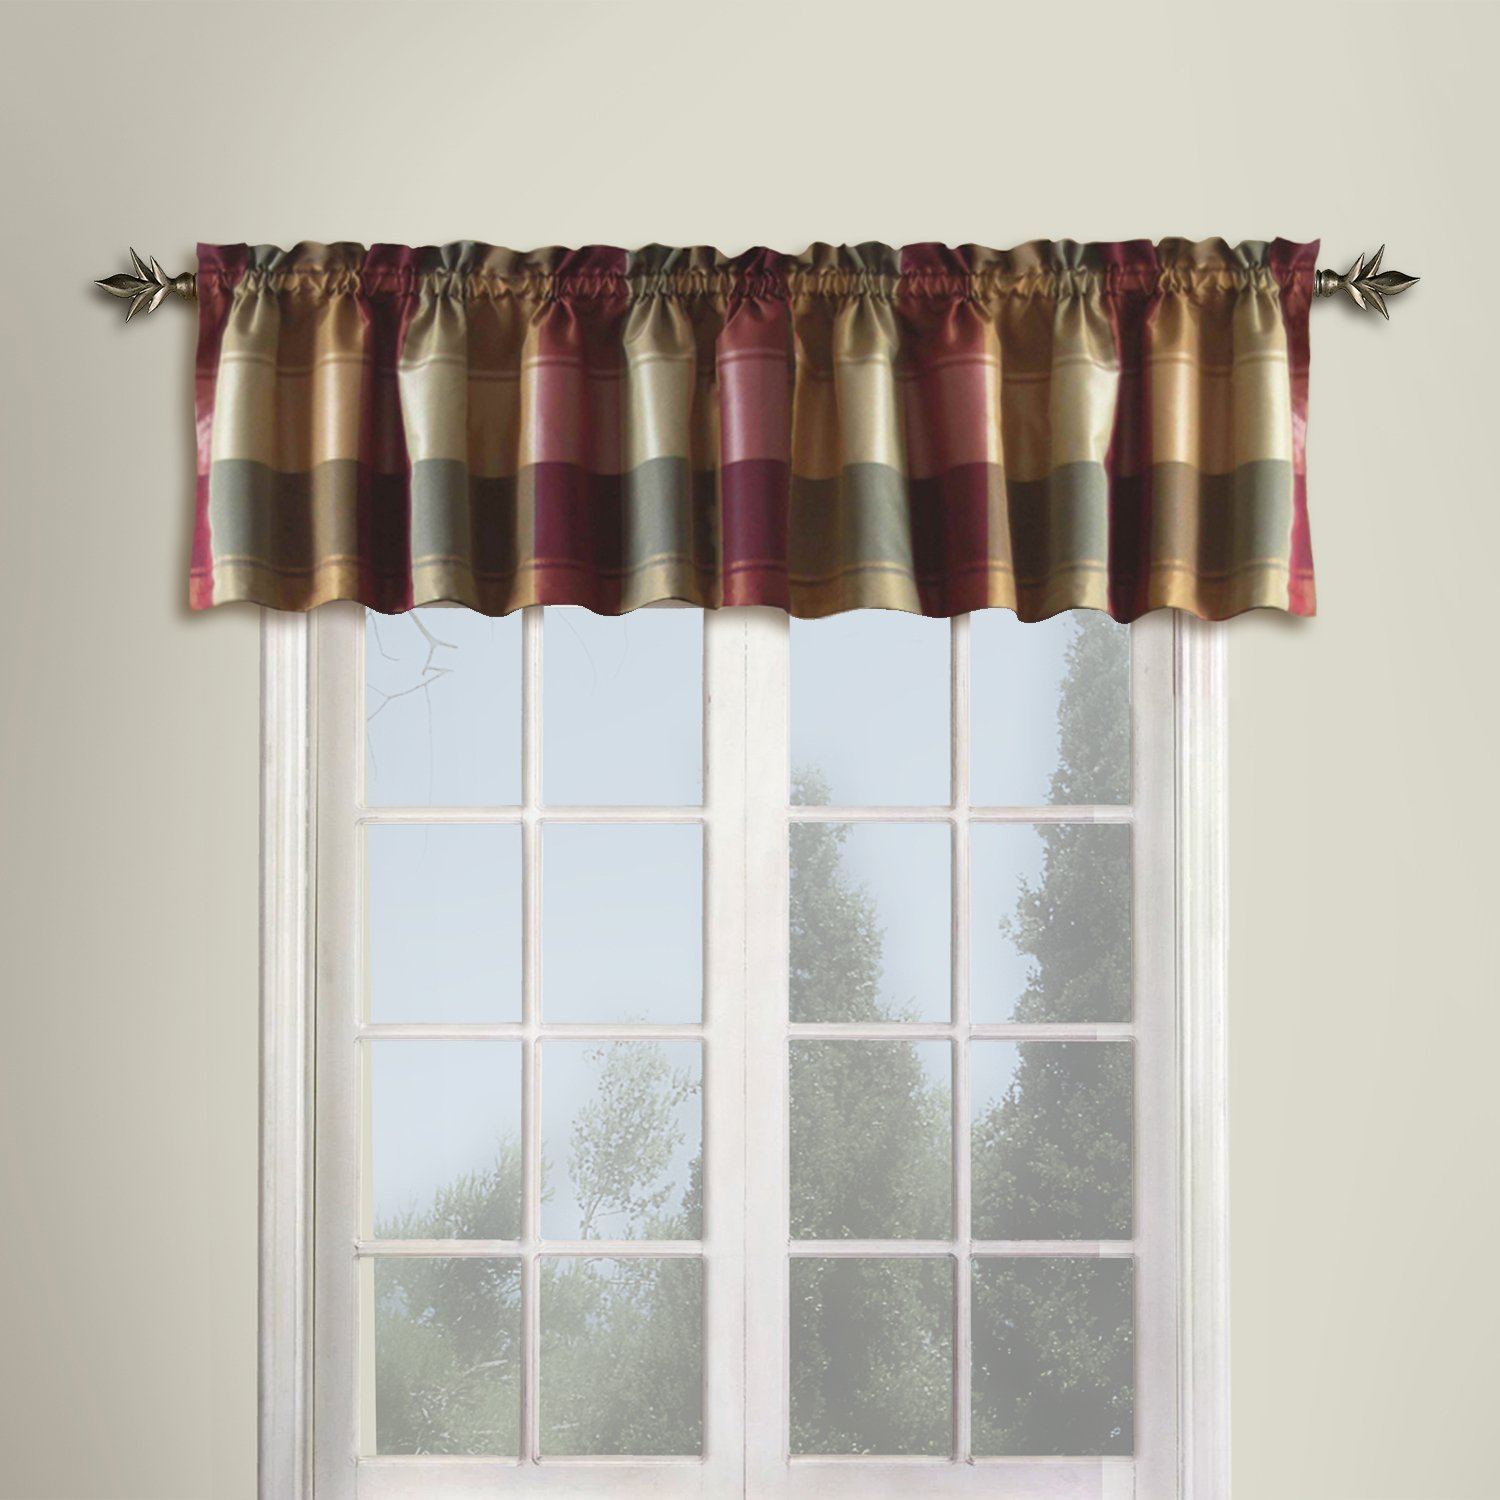 valance curtains amazon.com: united curtain plaid straight valance, 54 by 18-inch, burgundy:  home u0026 POUFHET